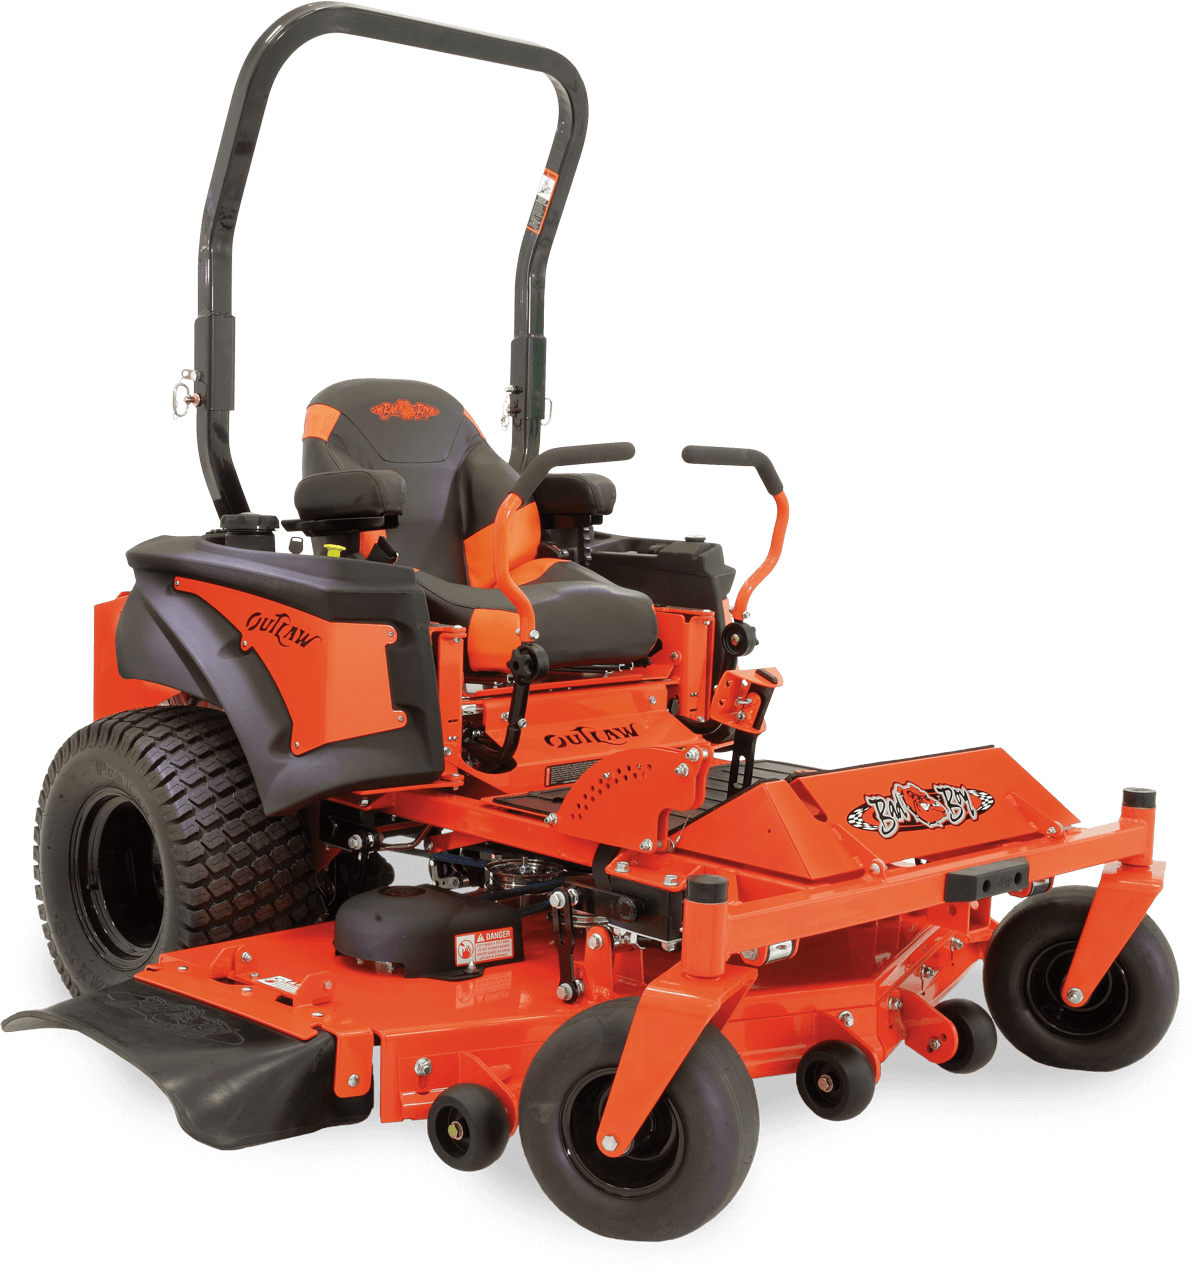 2016 Bad Boy Mowers 5400 (Kohler) Outlaw Extreme in El Campo, Texas